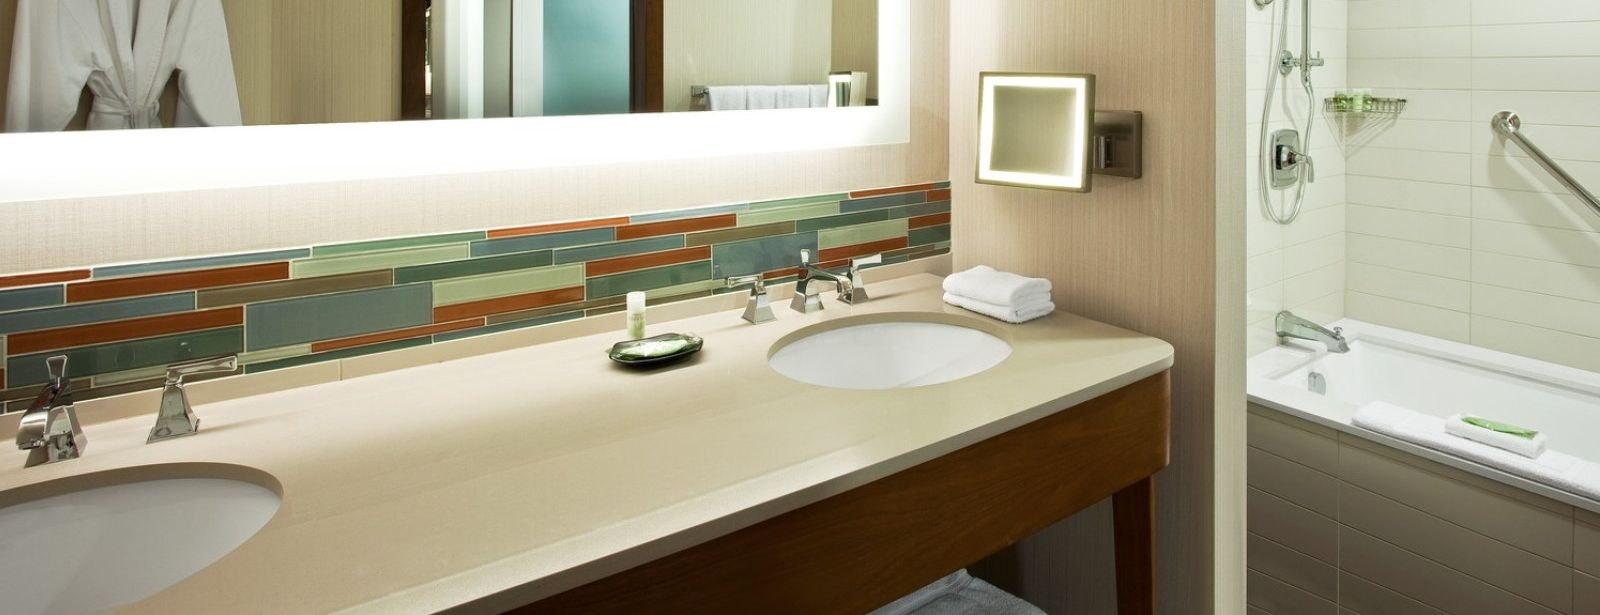 Hilton Head Hotels - The Westin - Deluxe Bathroom